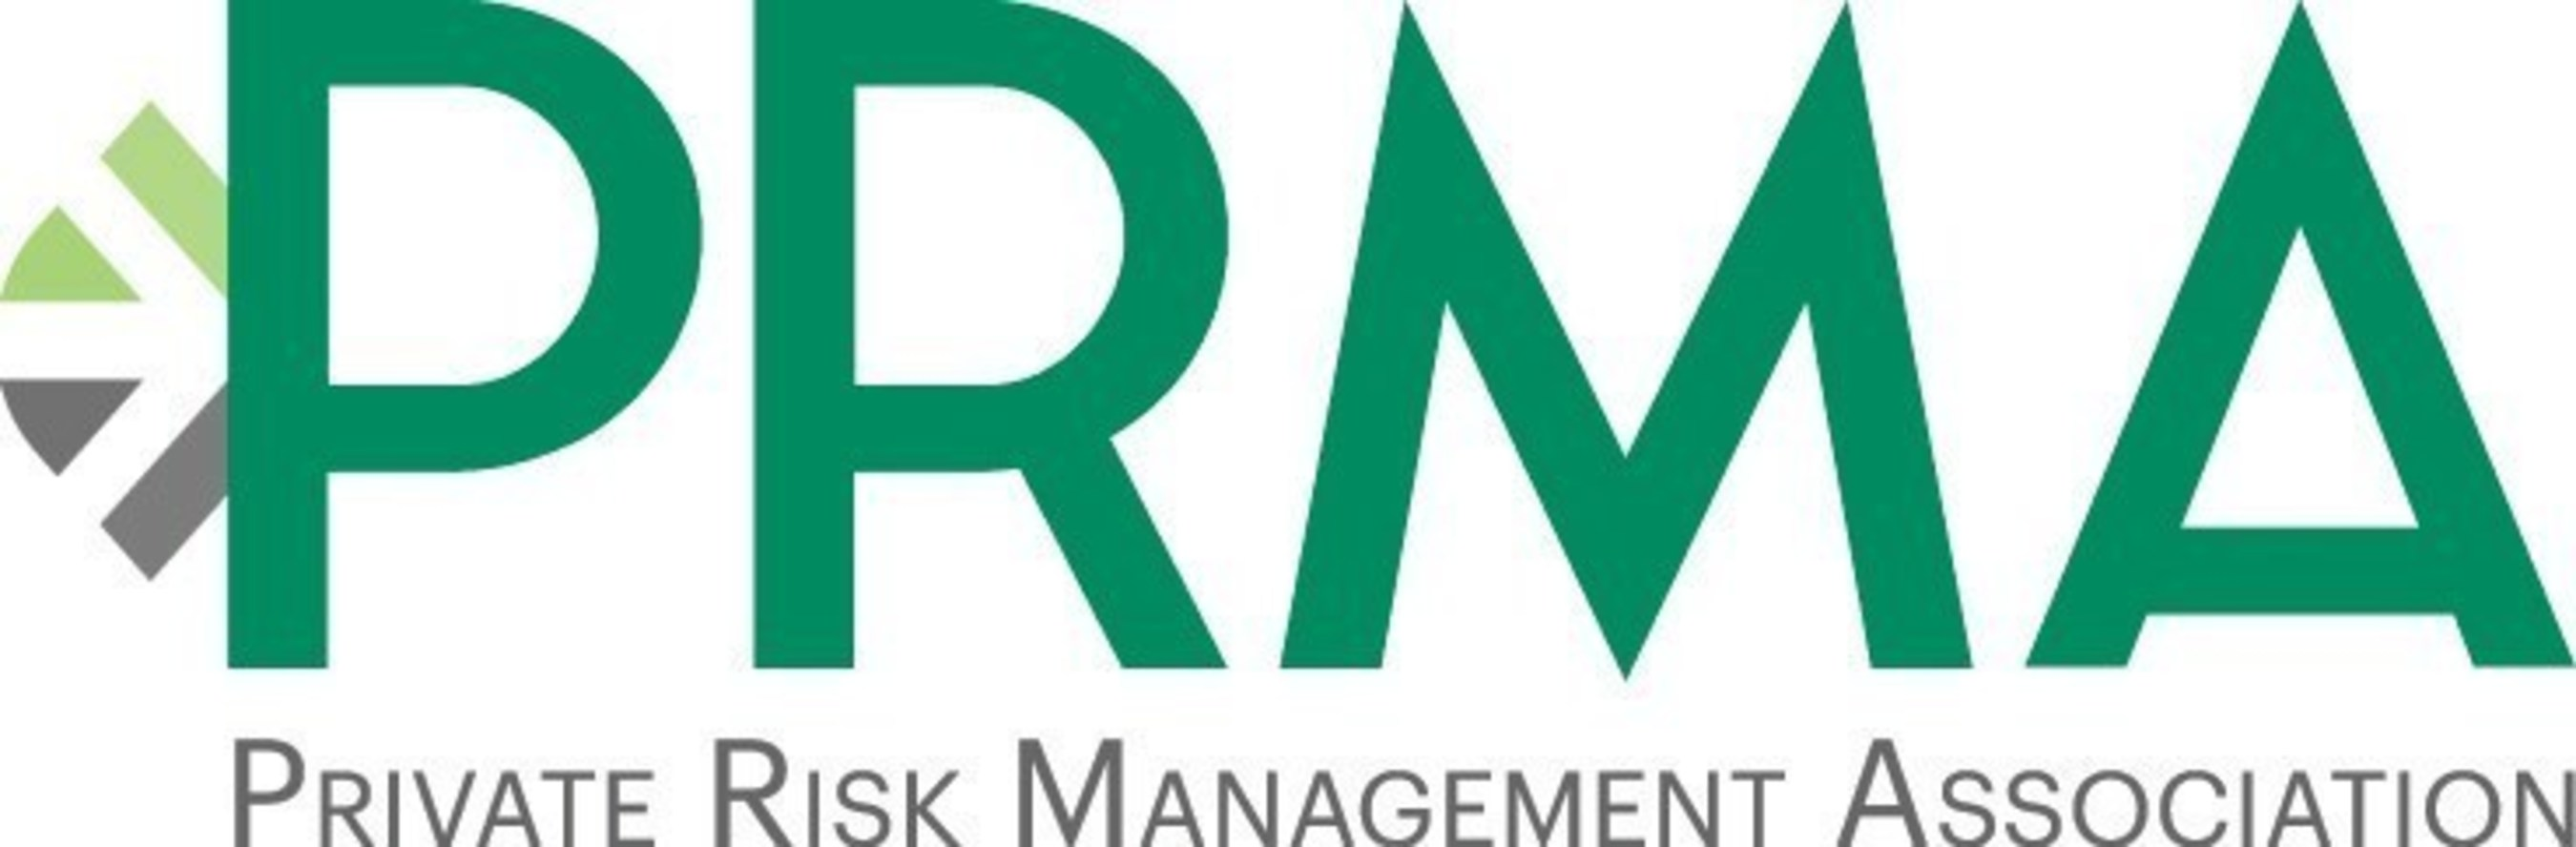 The Private Risk Management Association (PRMA) announces 193 certificate holders of the inaugural